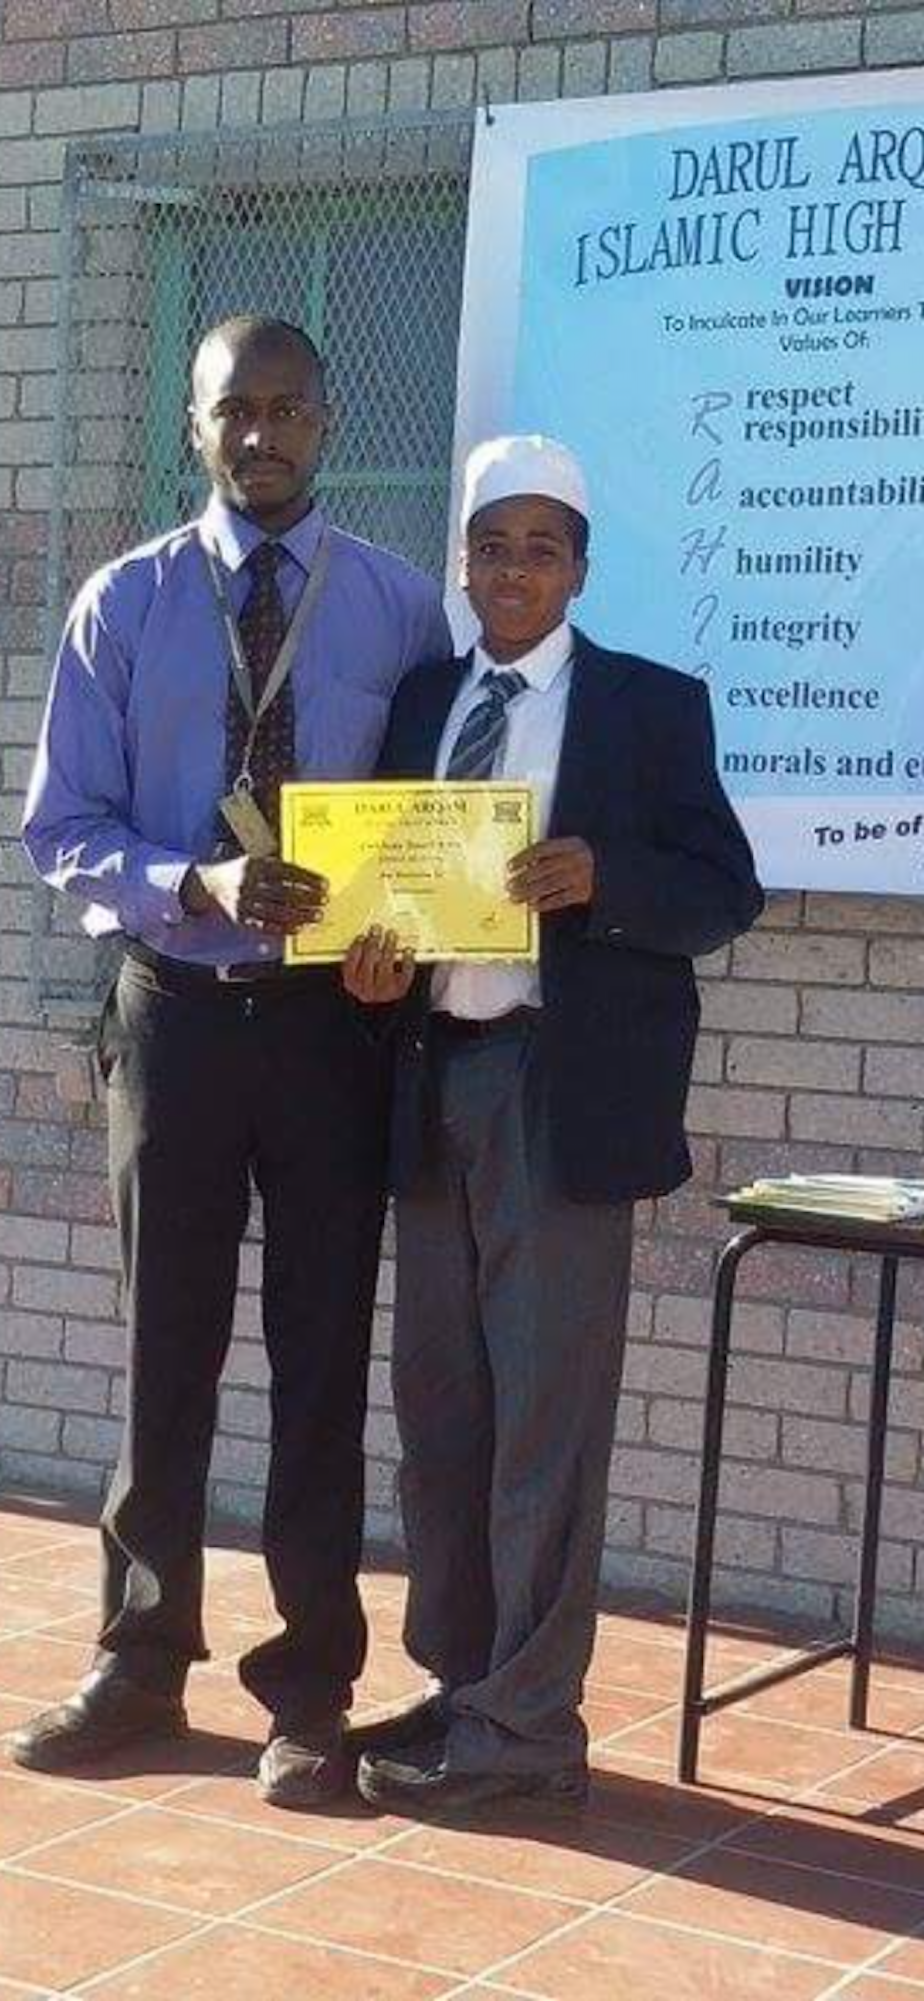 caption: Ahmed Ahmed (right) poses with his father at his 8th grade award ceremony in 2015 in Darul Arqam Islamic High School  in Cape Town, South Africa.